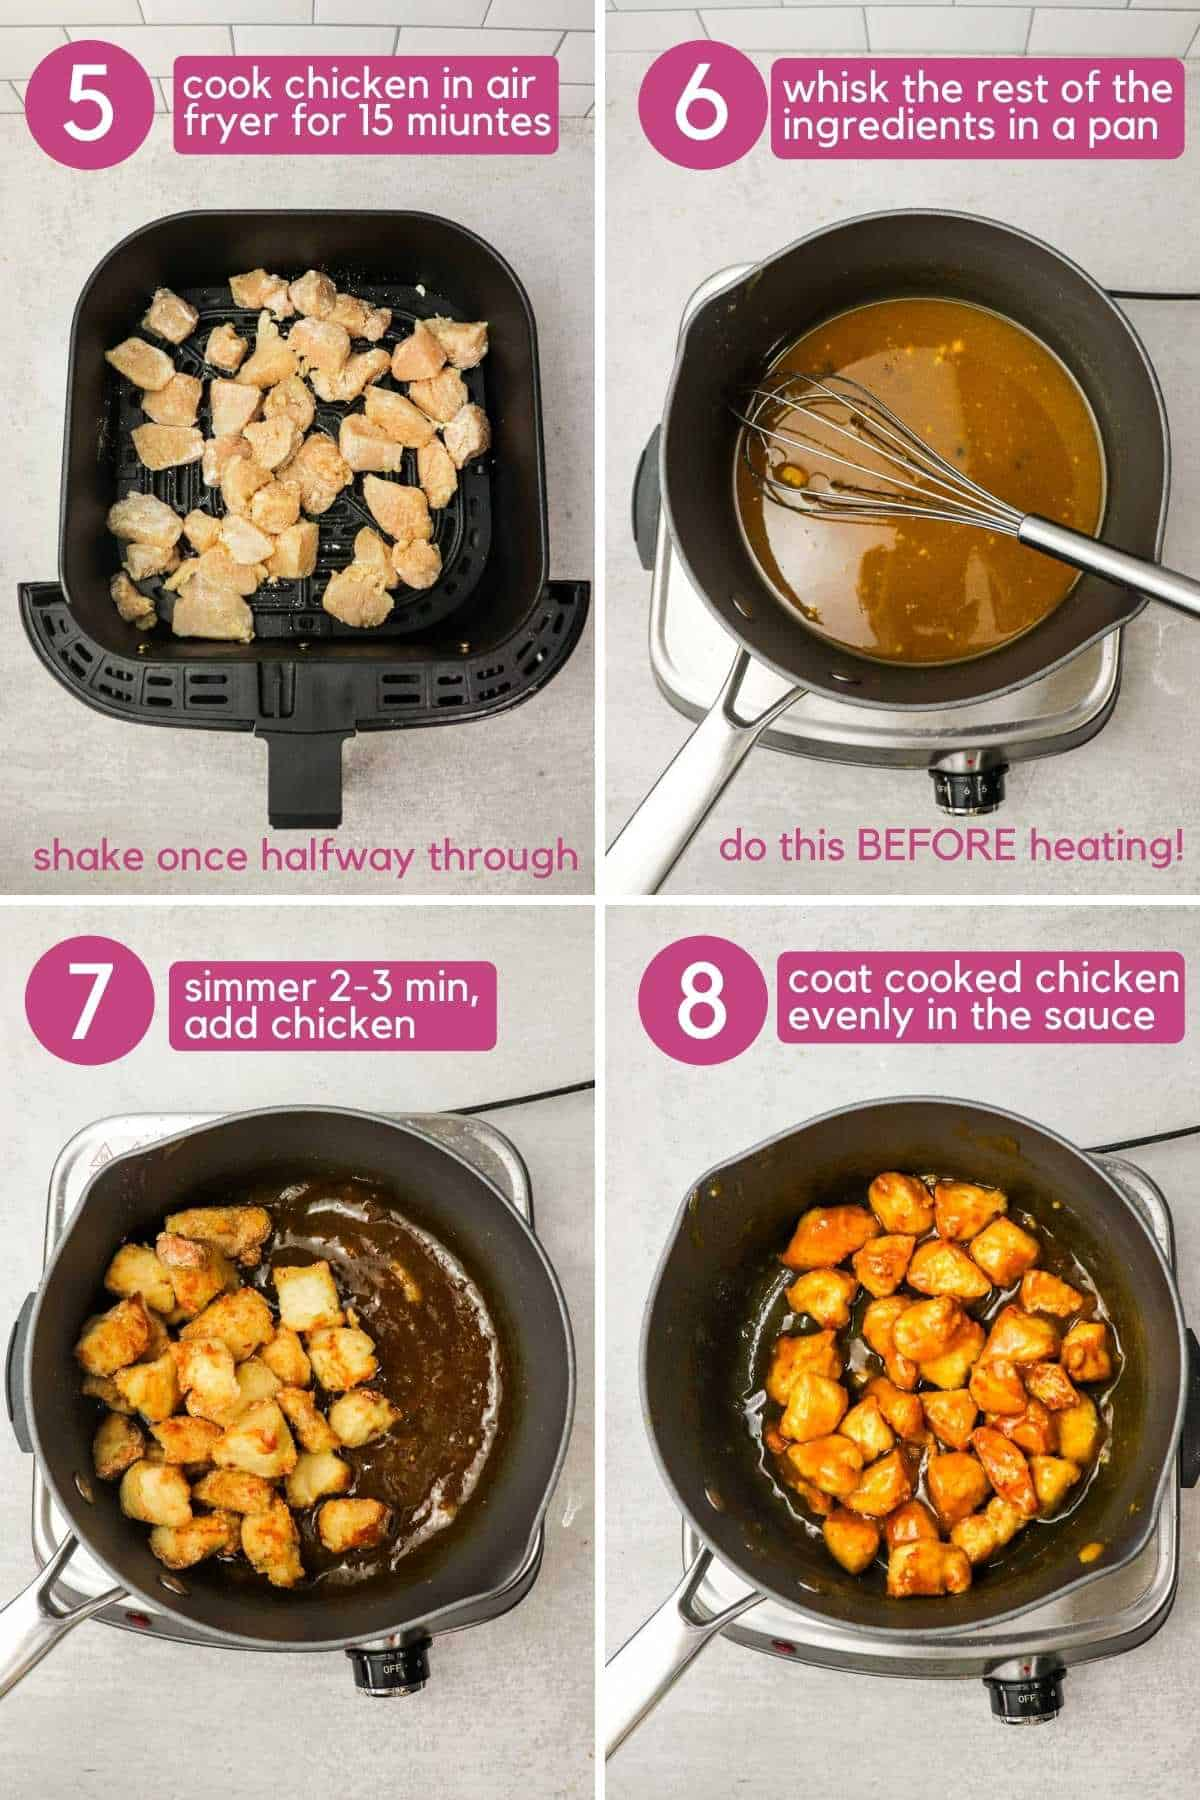 How to make the sauce for air fryer orange chicken